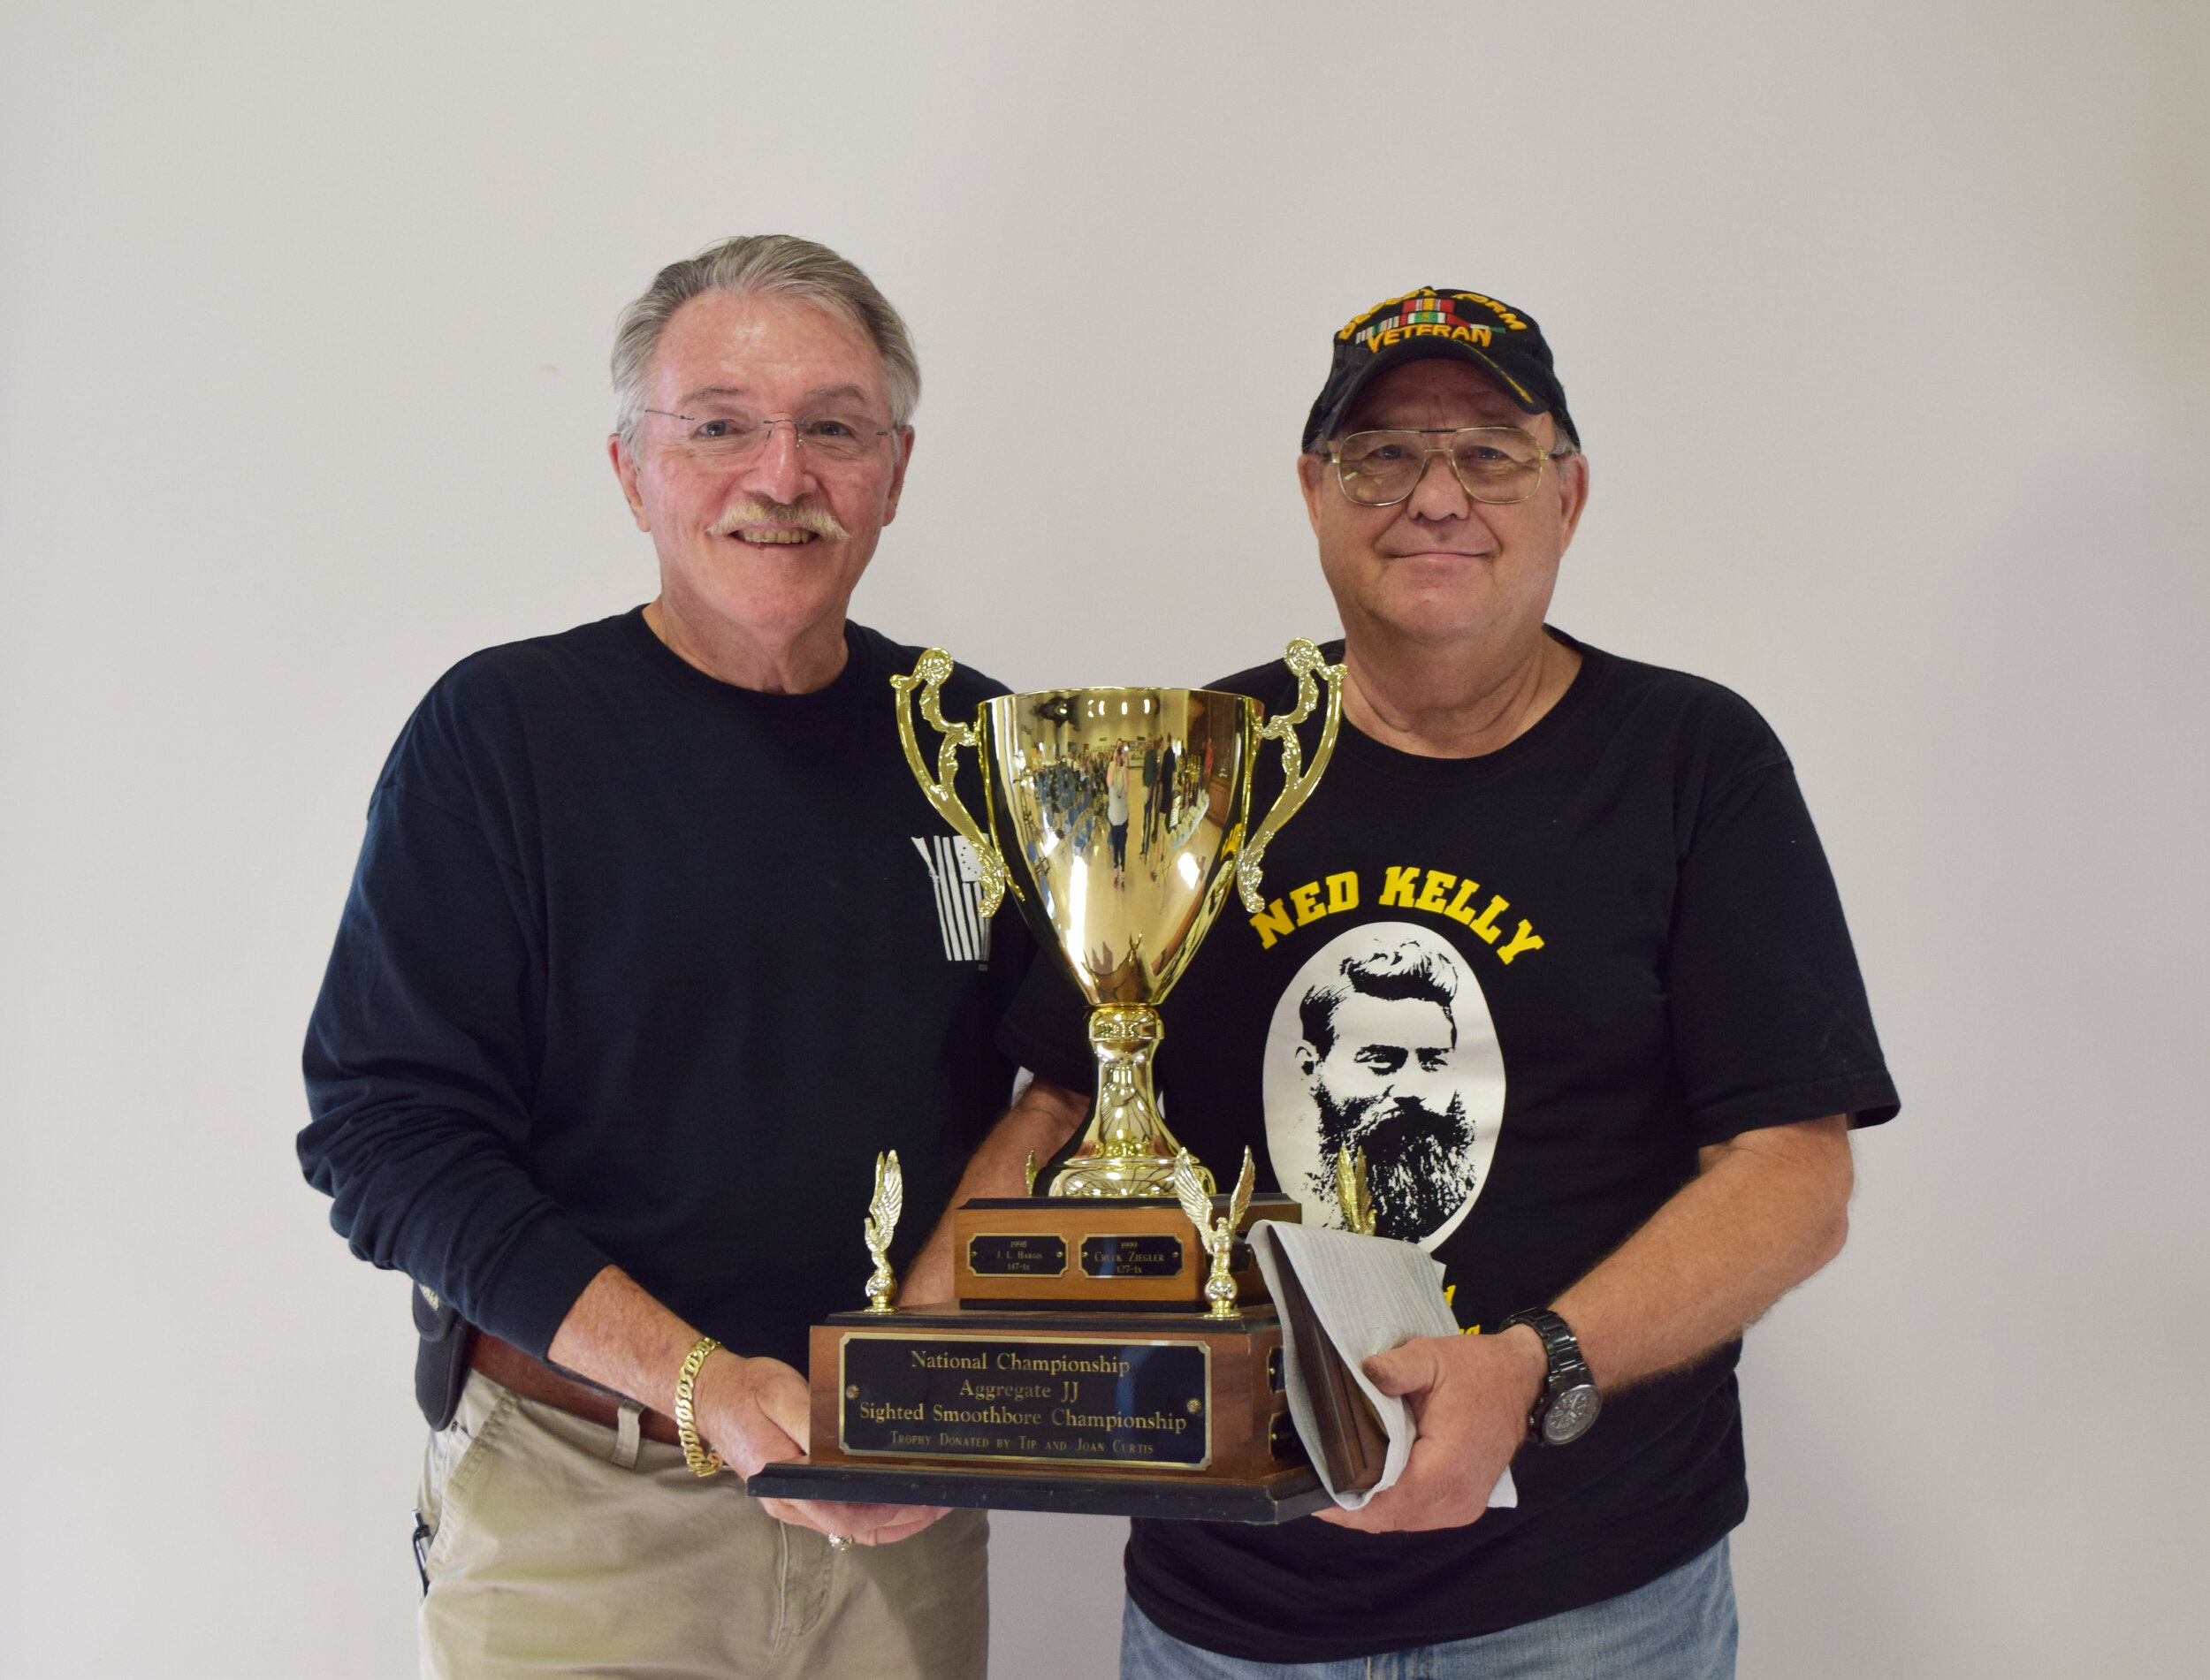 Darrell Vigue - Aggregate JJ - Sighted Smoothbore Championship Winner with NMLRA President Brent Steele